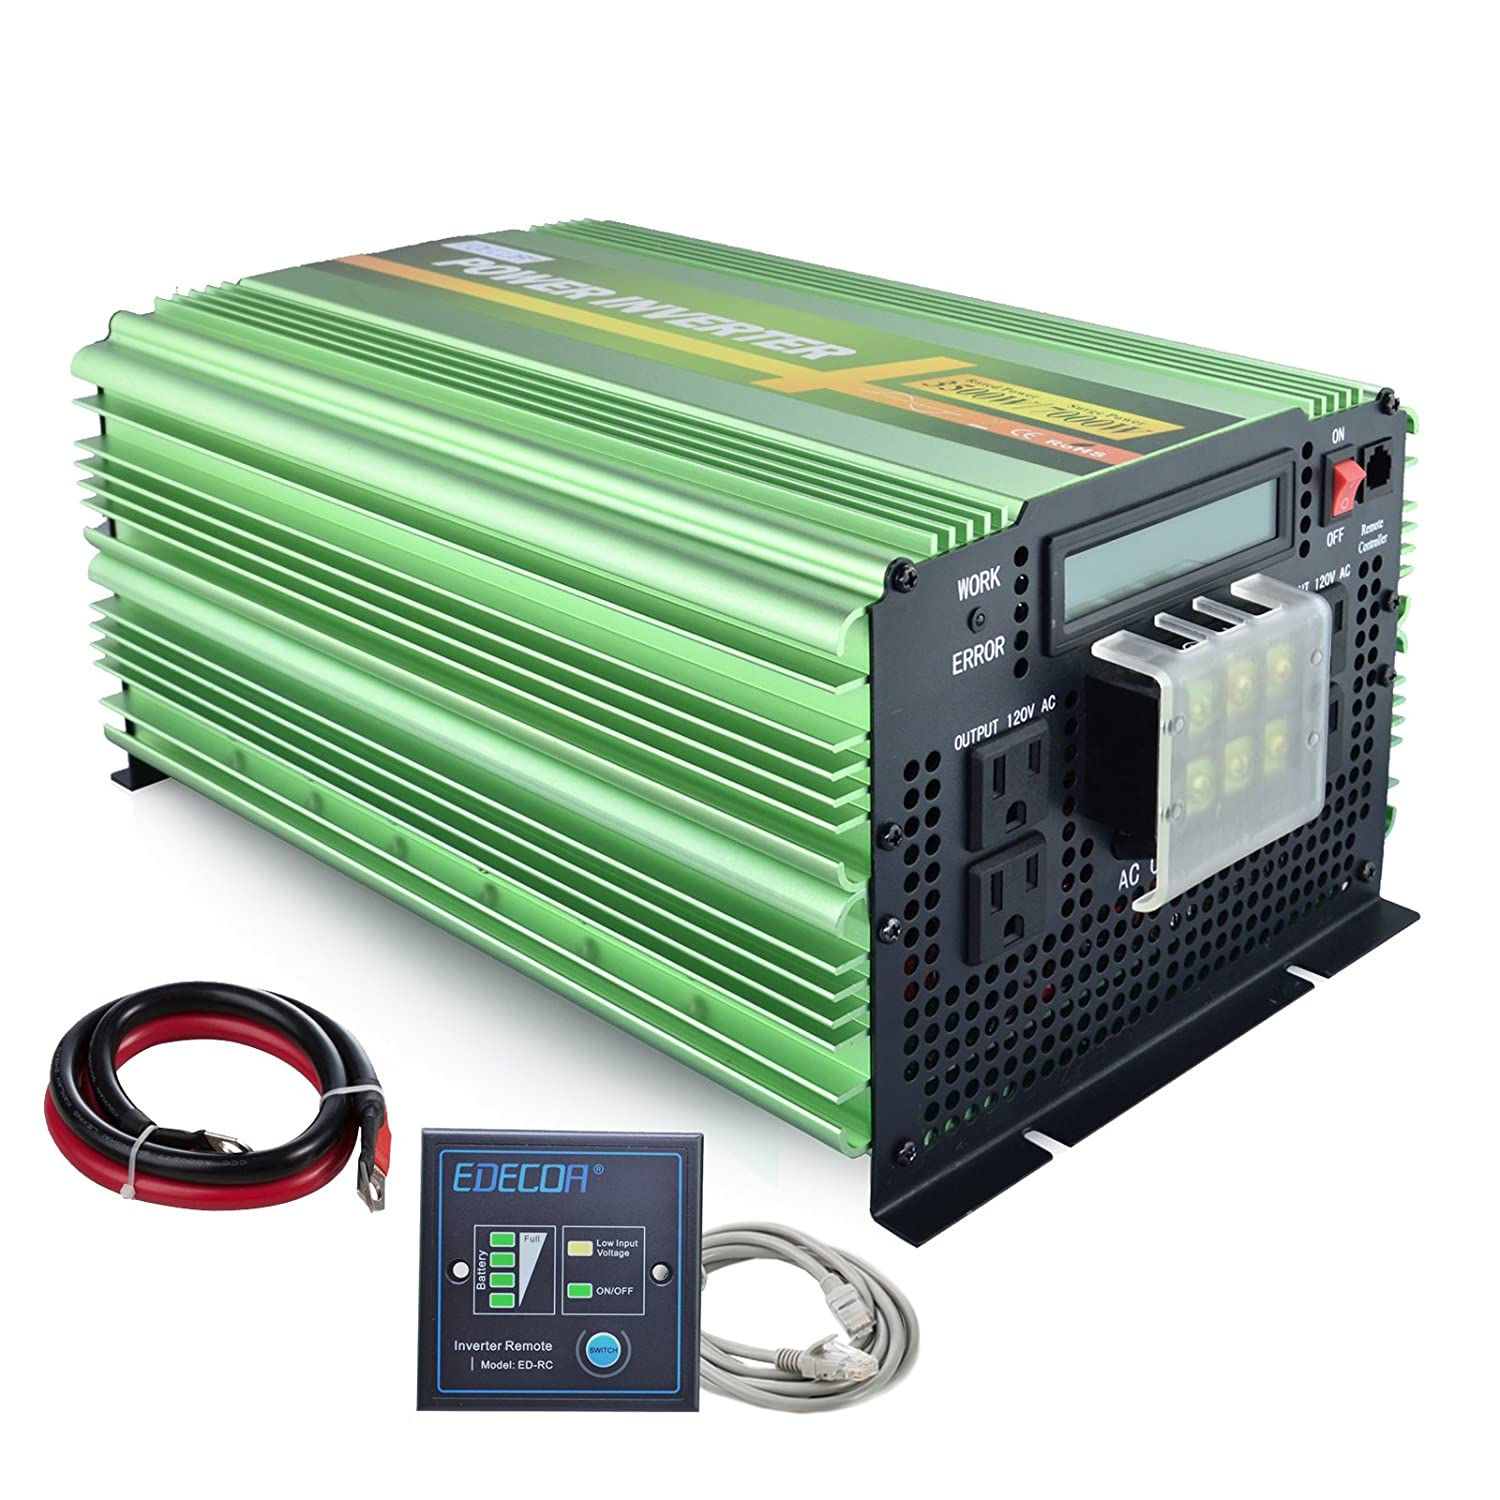 Edecoa Pure Sine Wave Power Inverter 3500w Dc 12v To Ac Solar Inverters Block Diagram Electronic Products 120v With Lcd Display And Remote Controller 4 Outlets 1 Hardwire Terminal Car